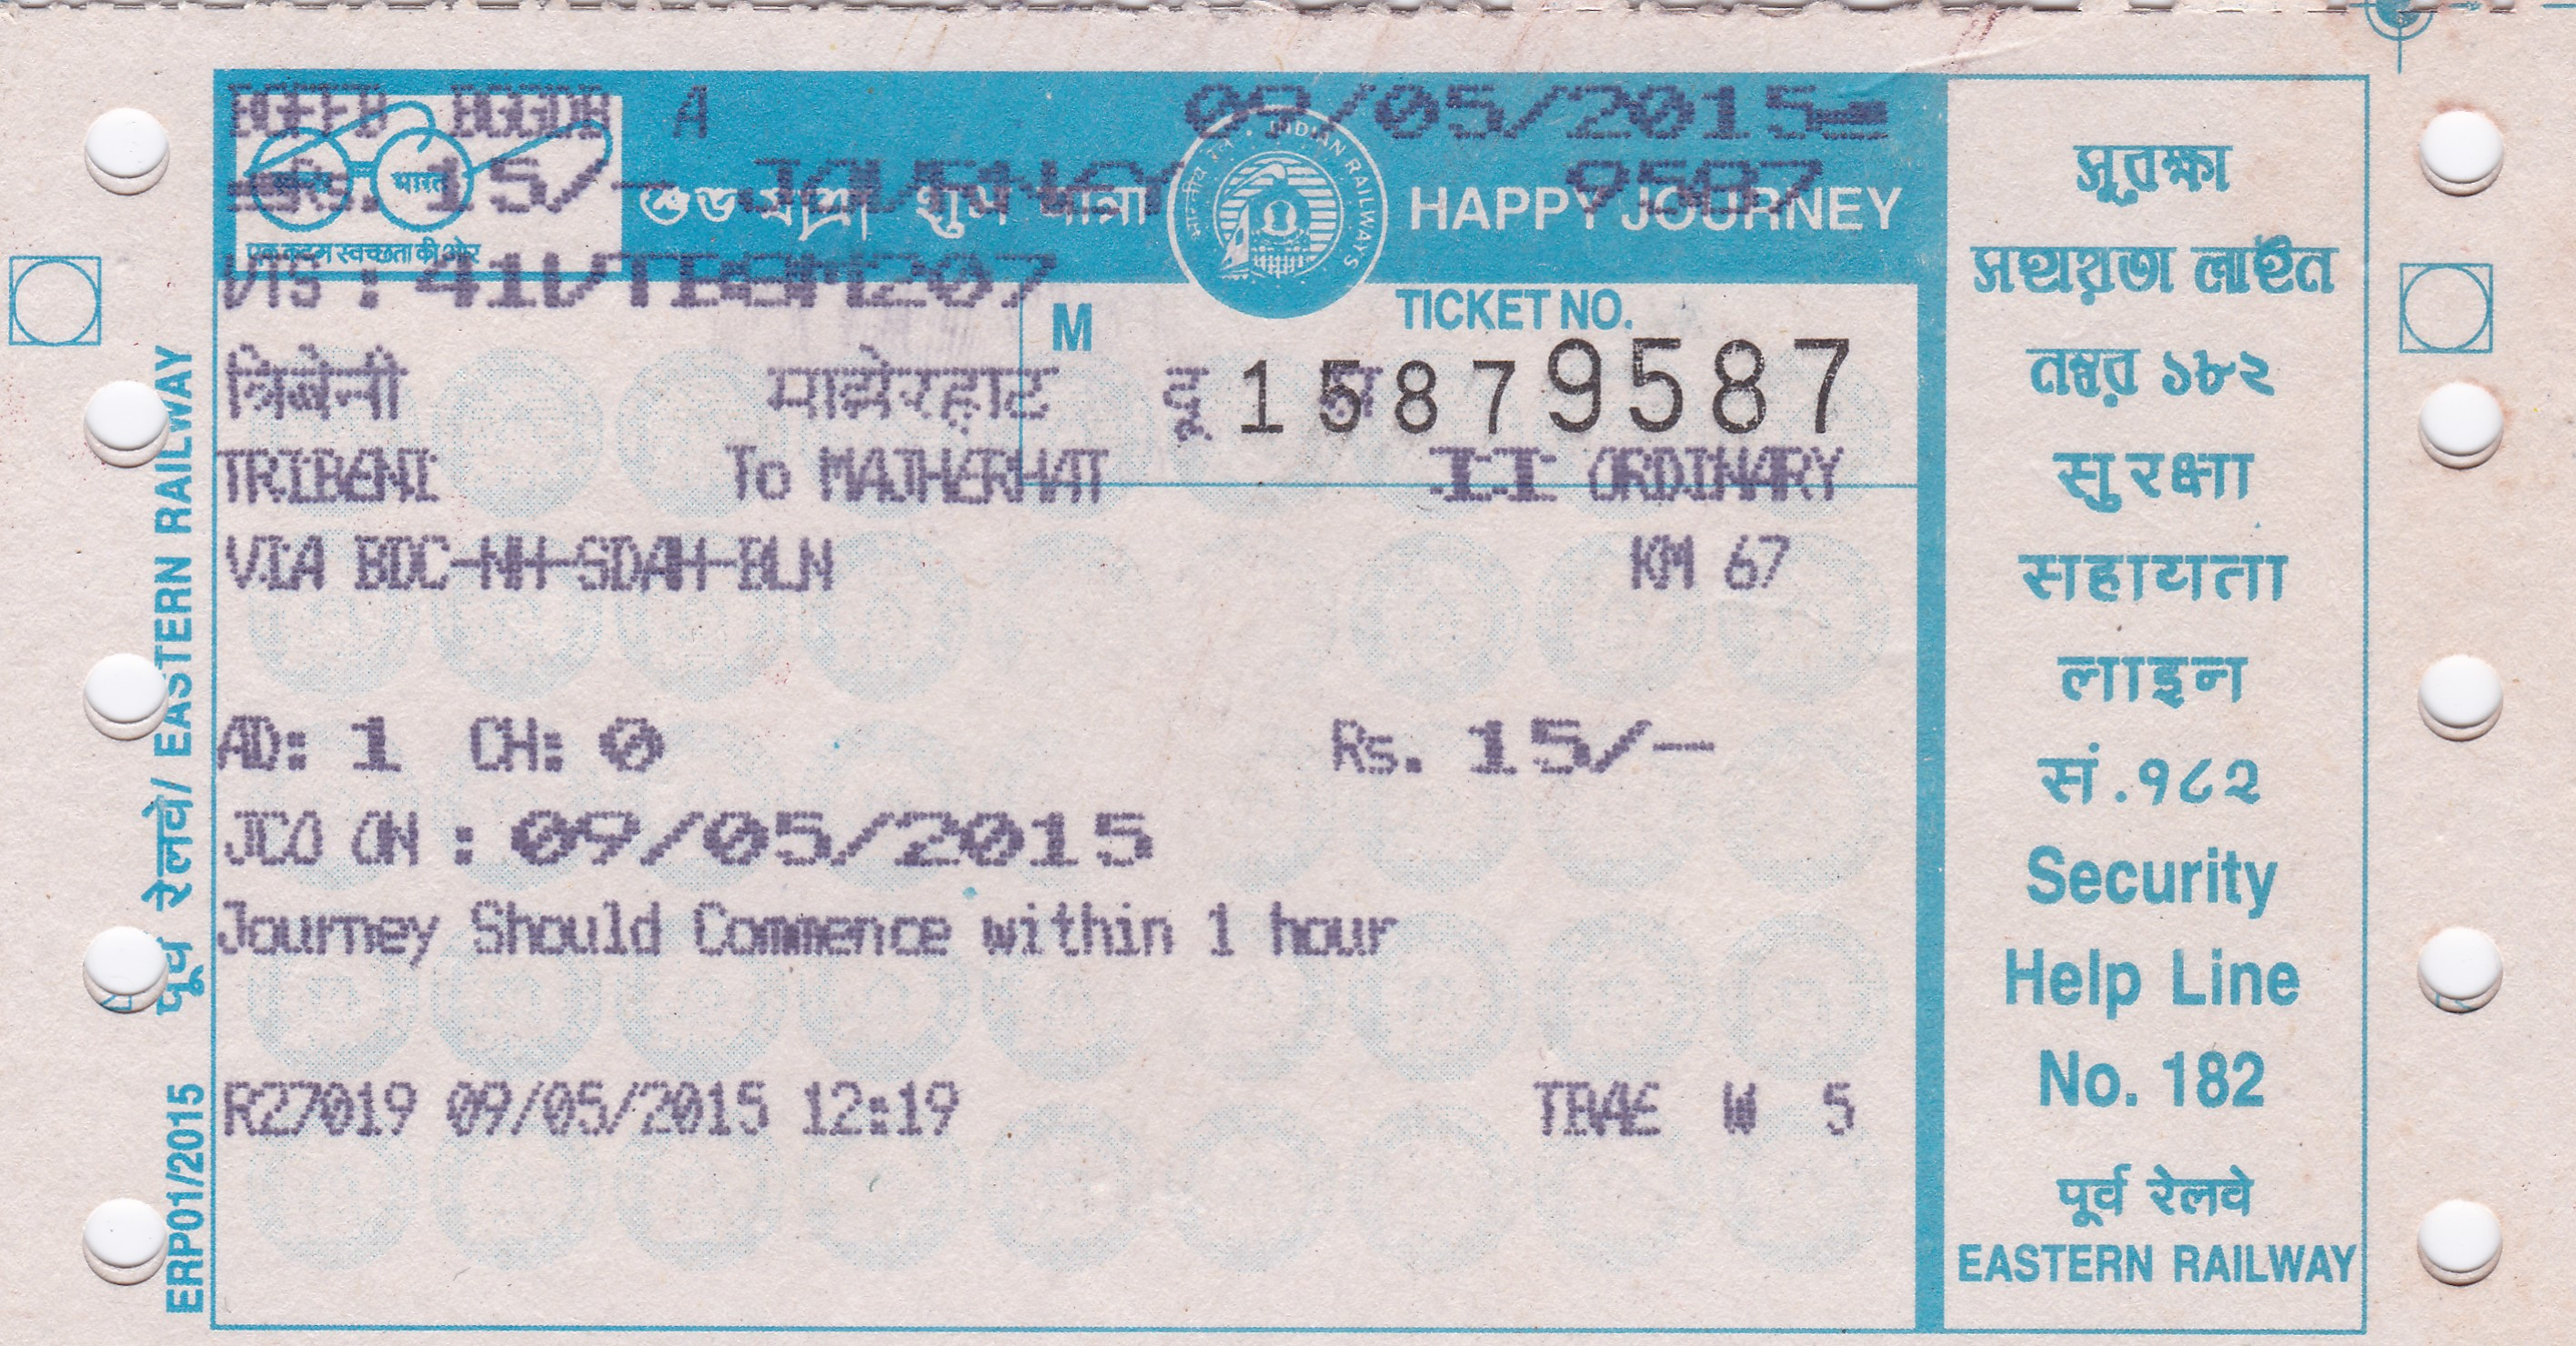 File:Indian railway suburban rail ticket jpg - Wikimedia Commons